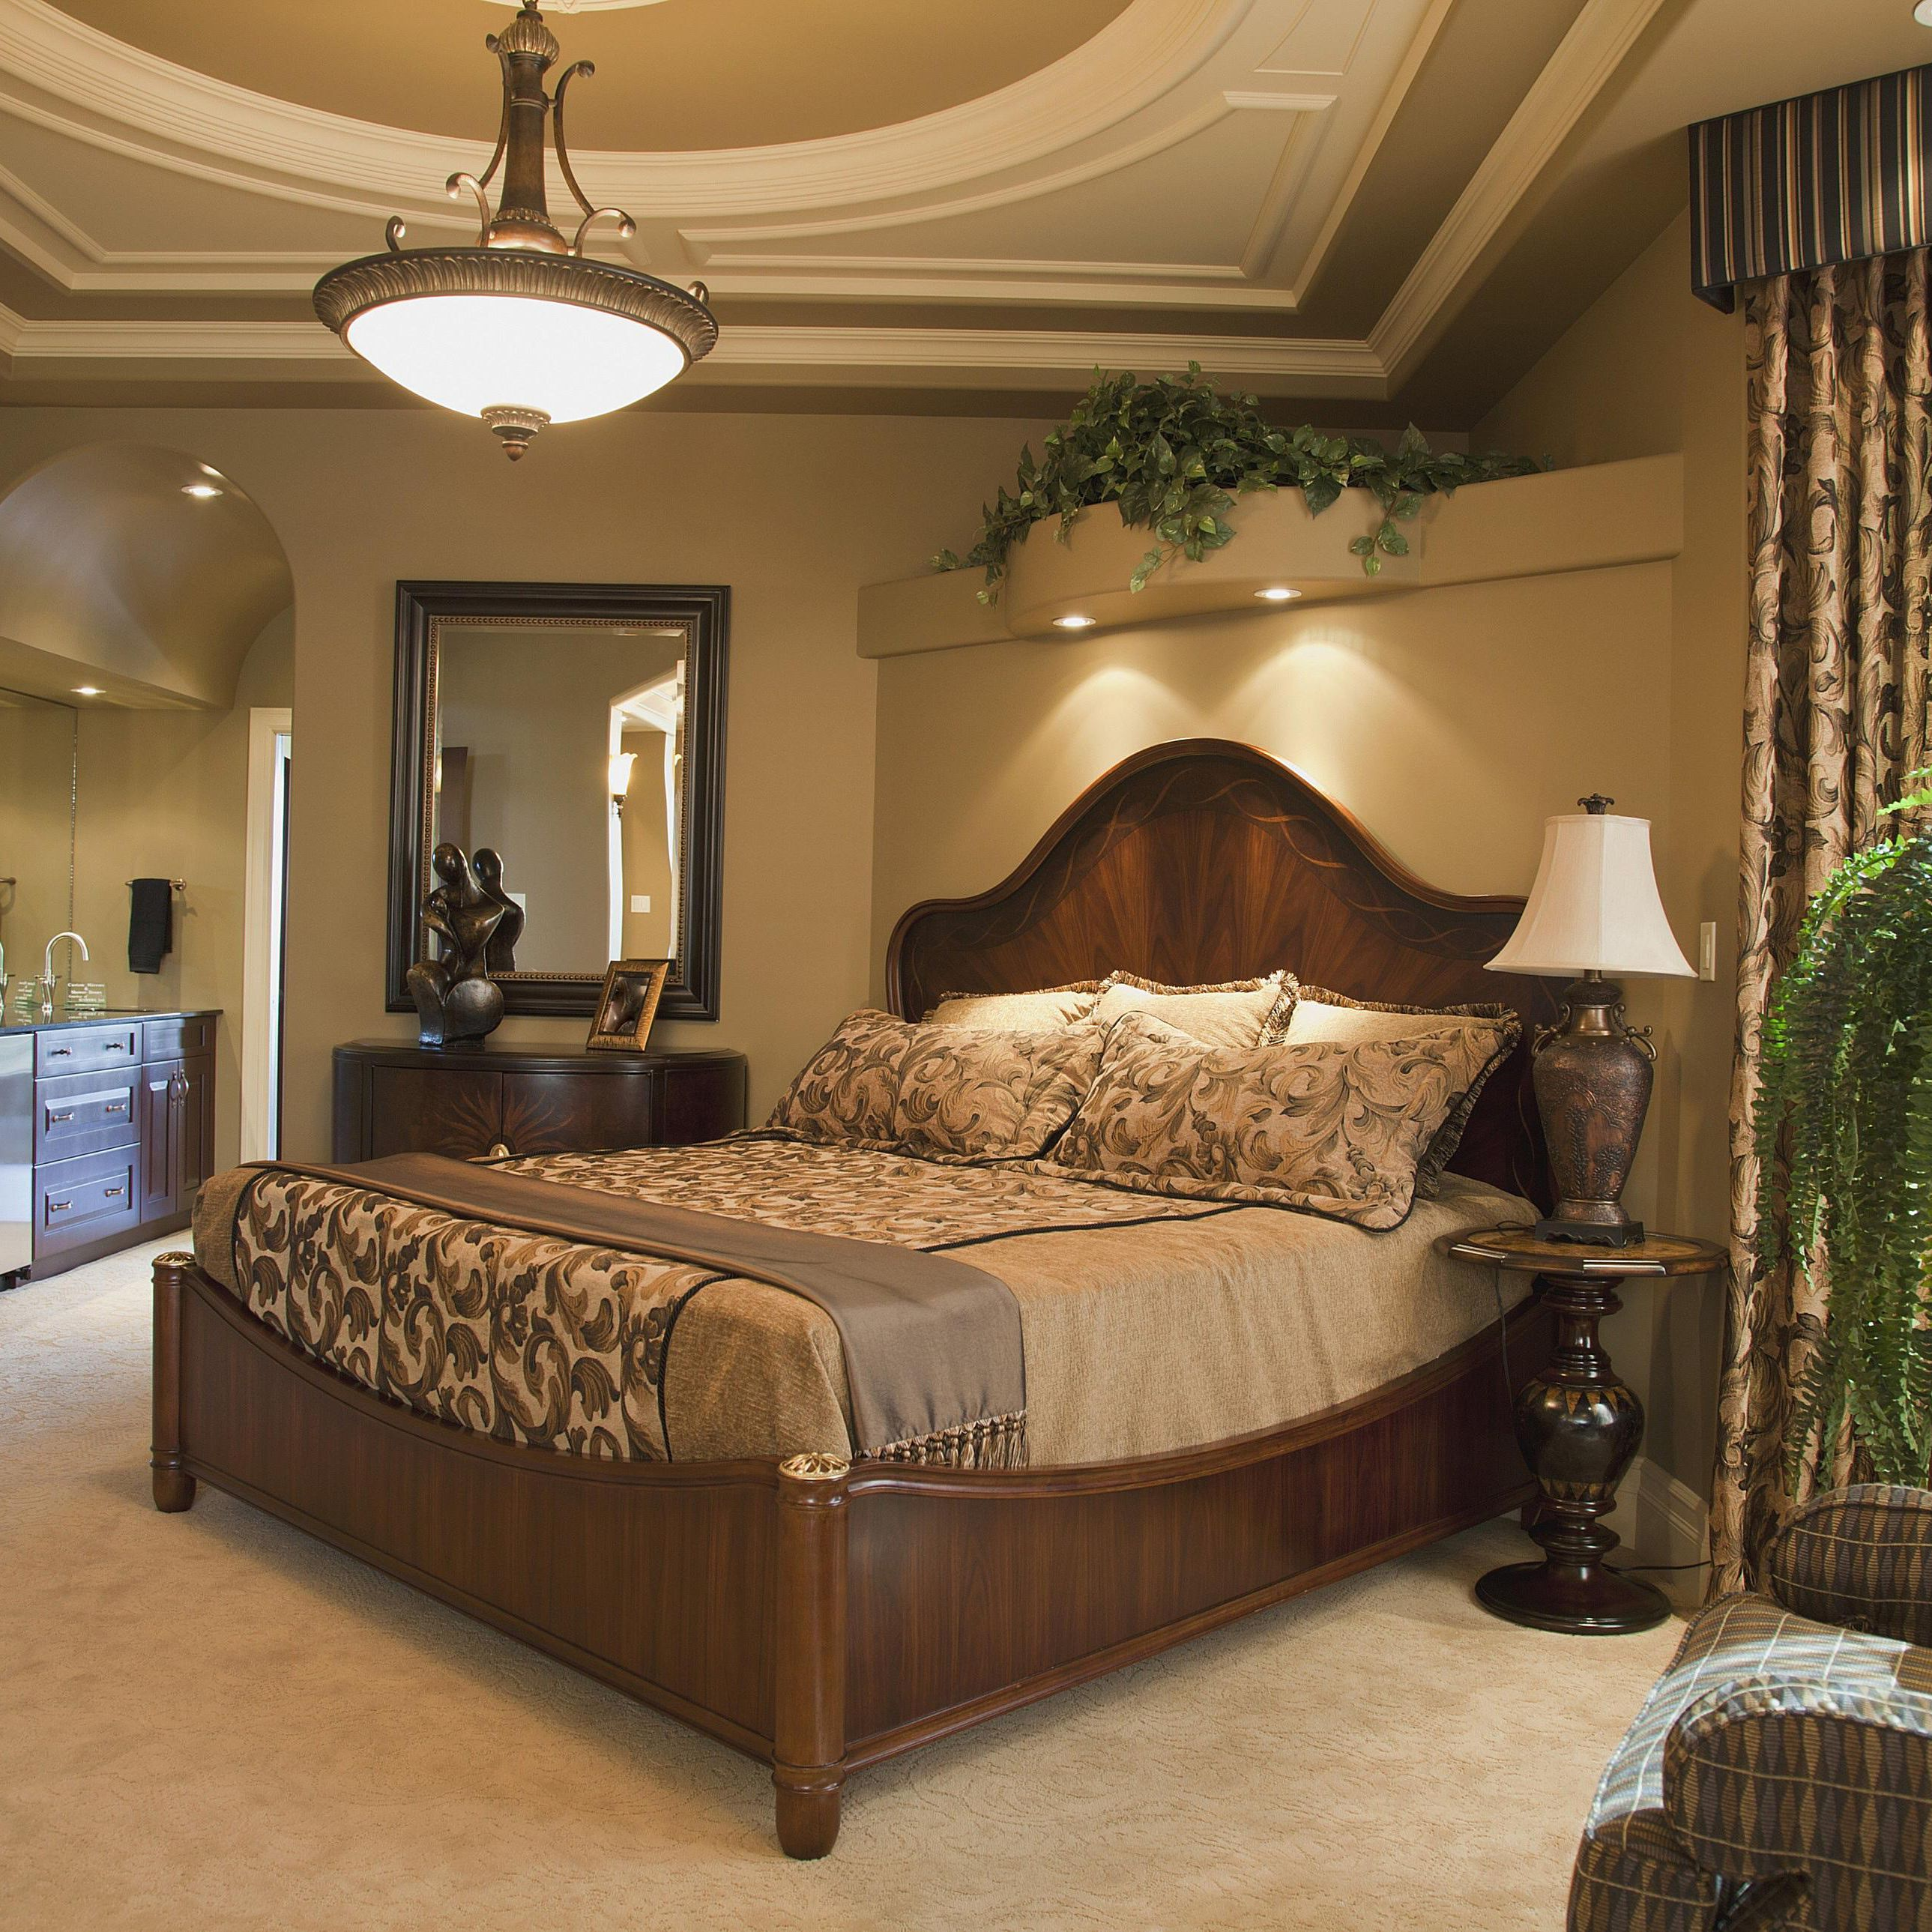 Tuscan Decorating Style For Bedrooms